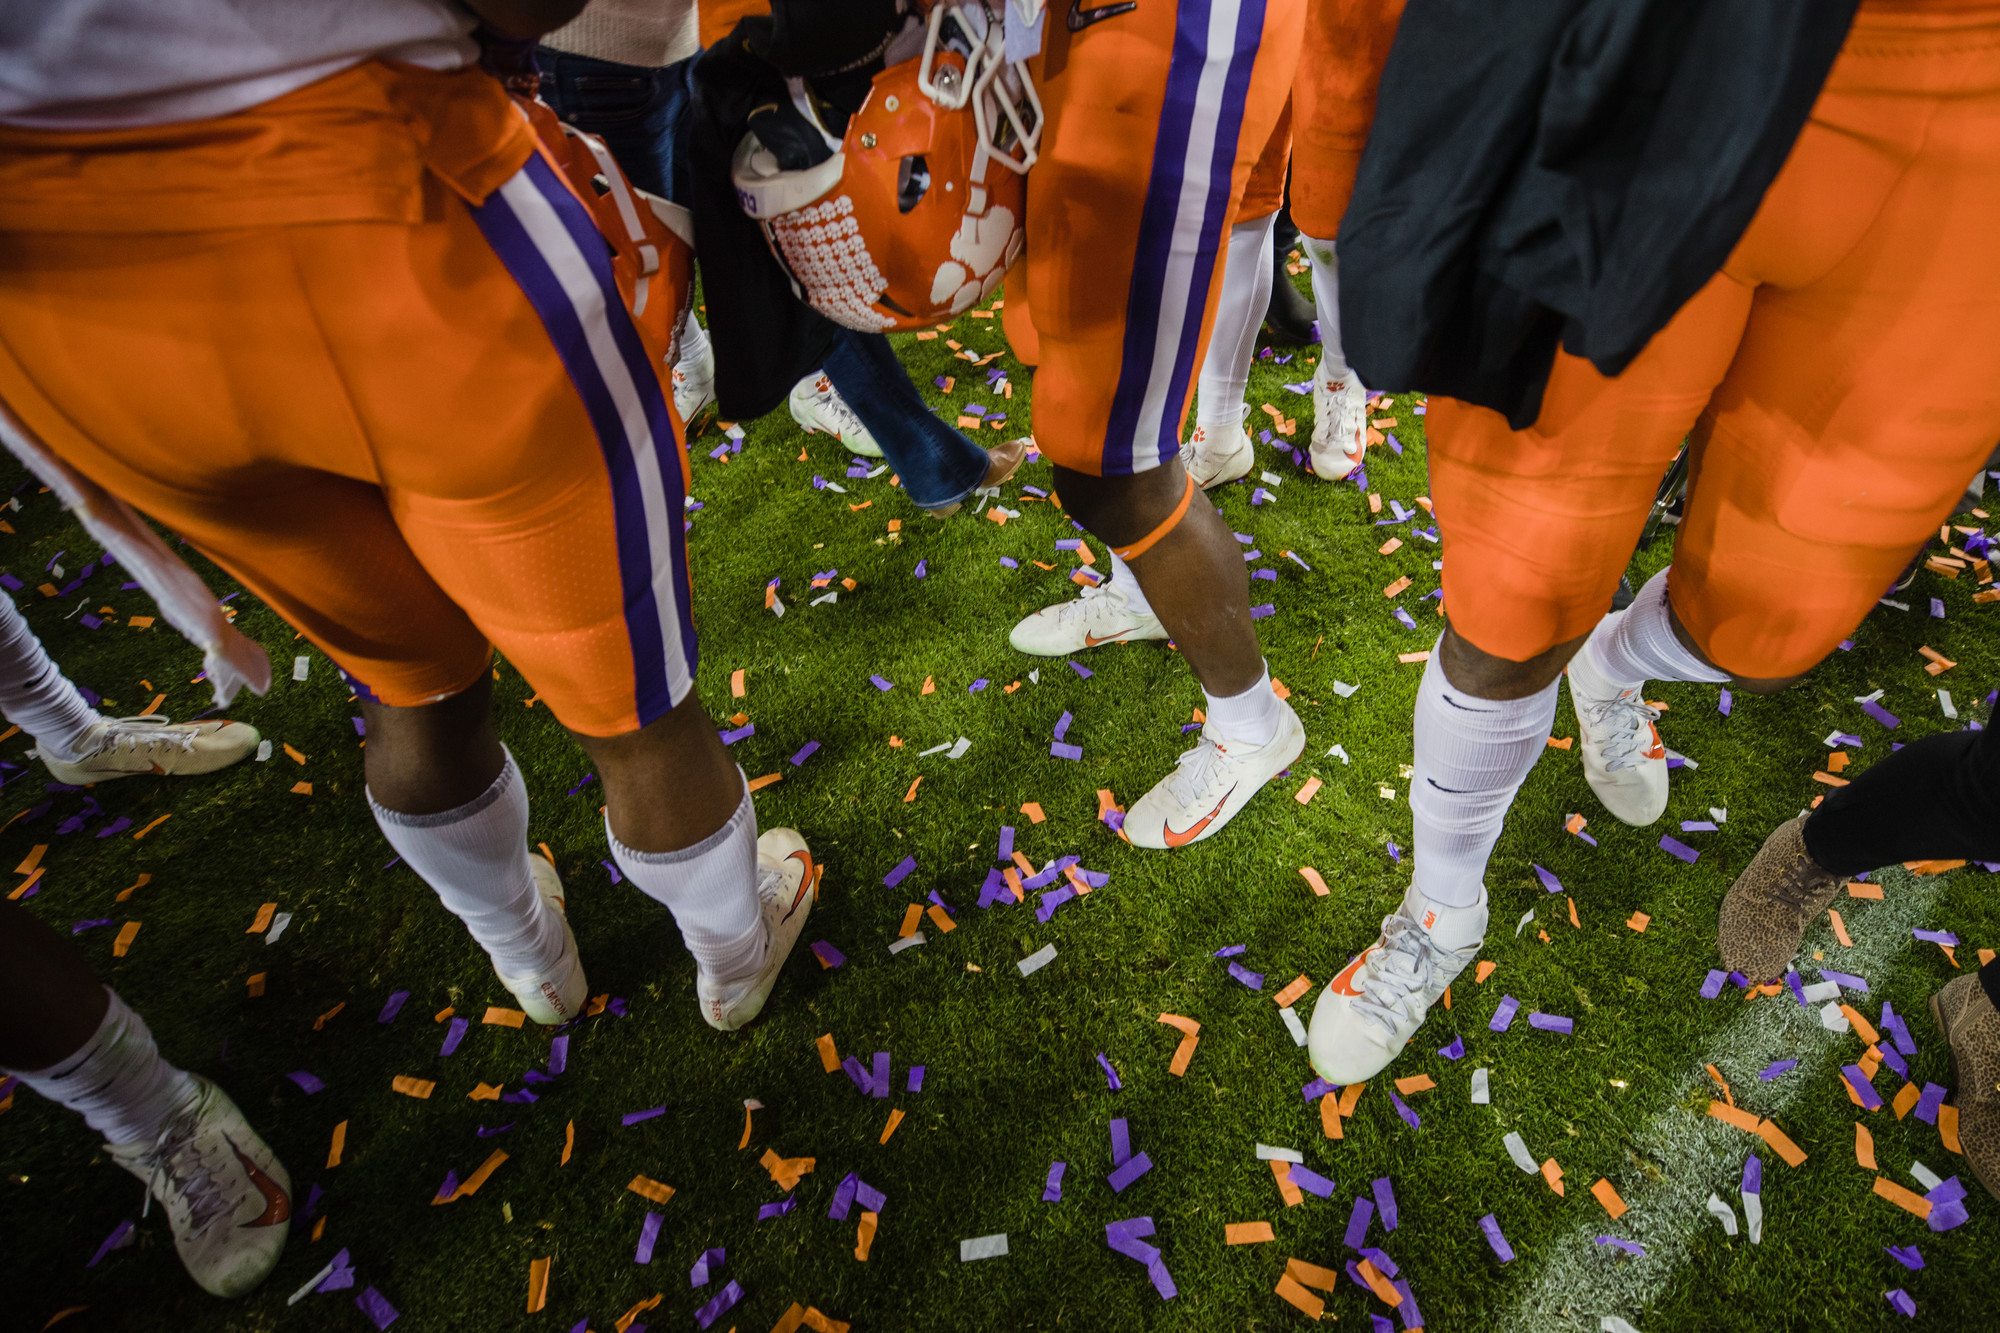 Clemson players celebrate at Levi's Stadium in Santa Clara, California, on Monday, Jan. 7 after routing Alabama 44-16 to win the 2019 CFP National Championship.